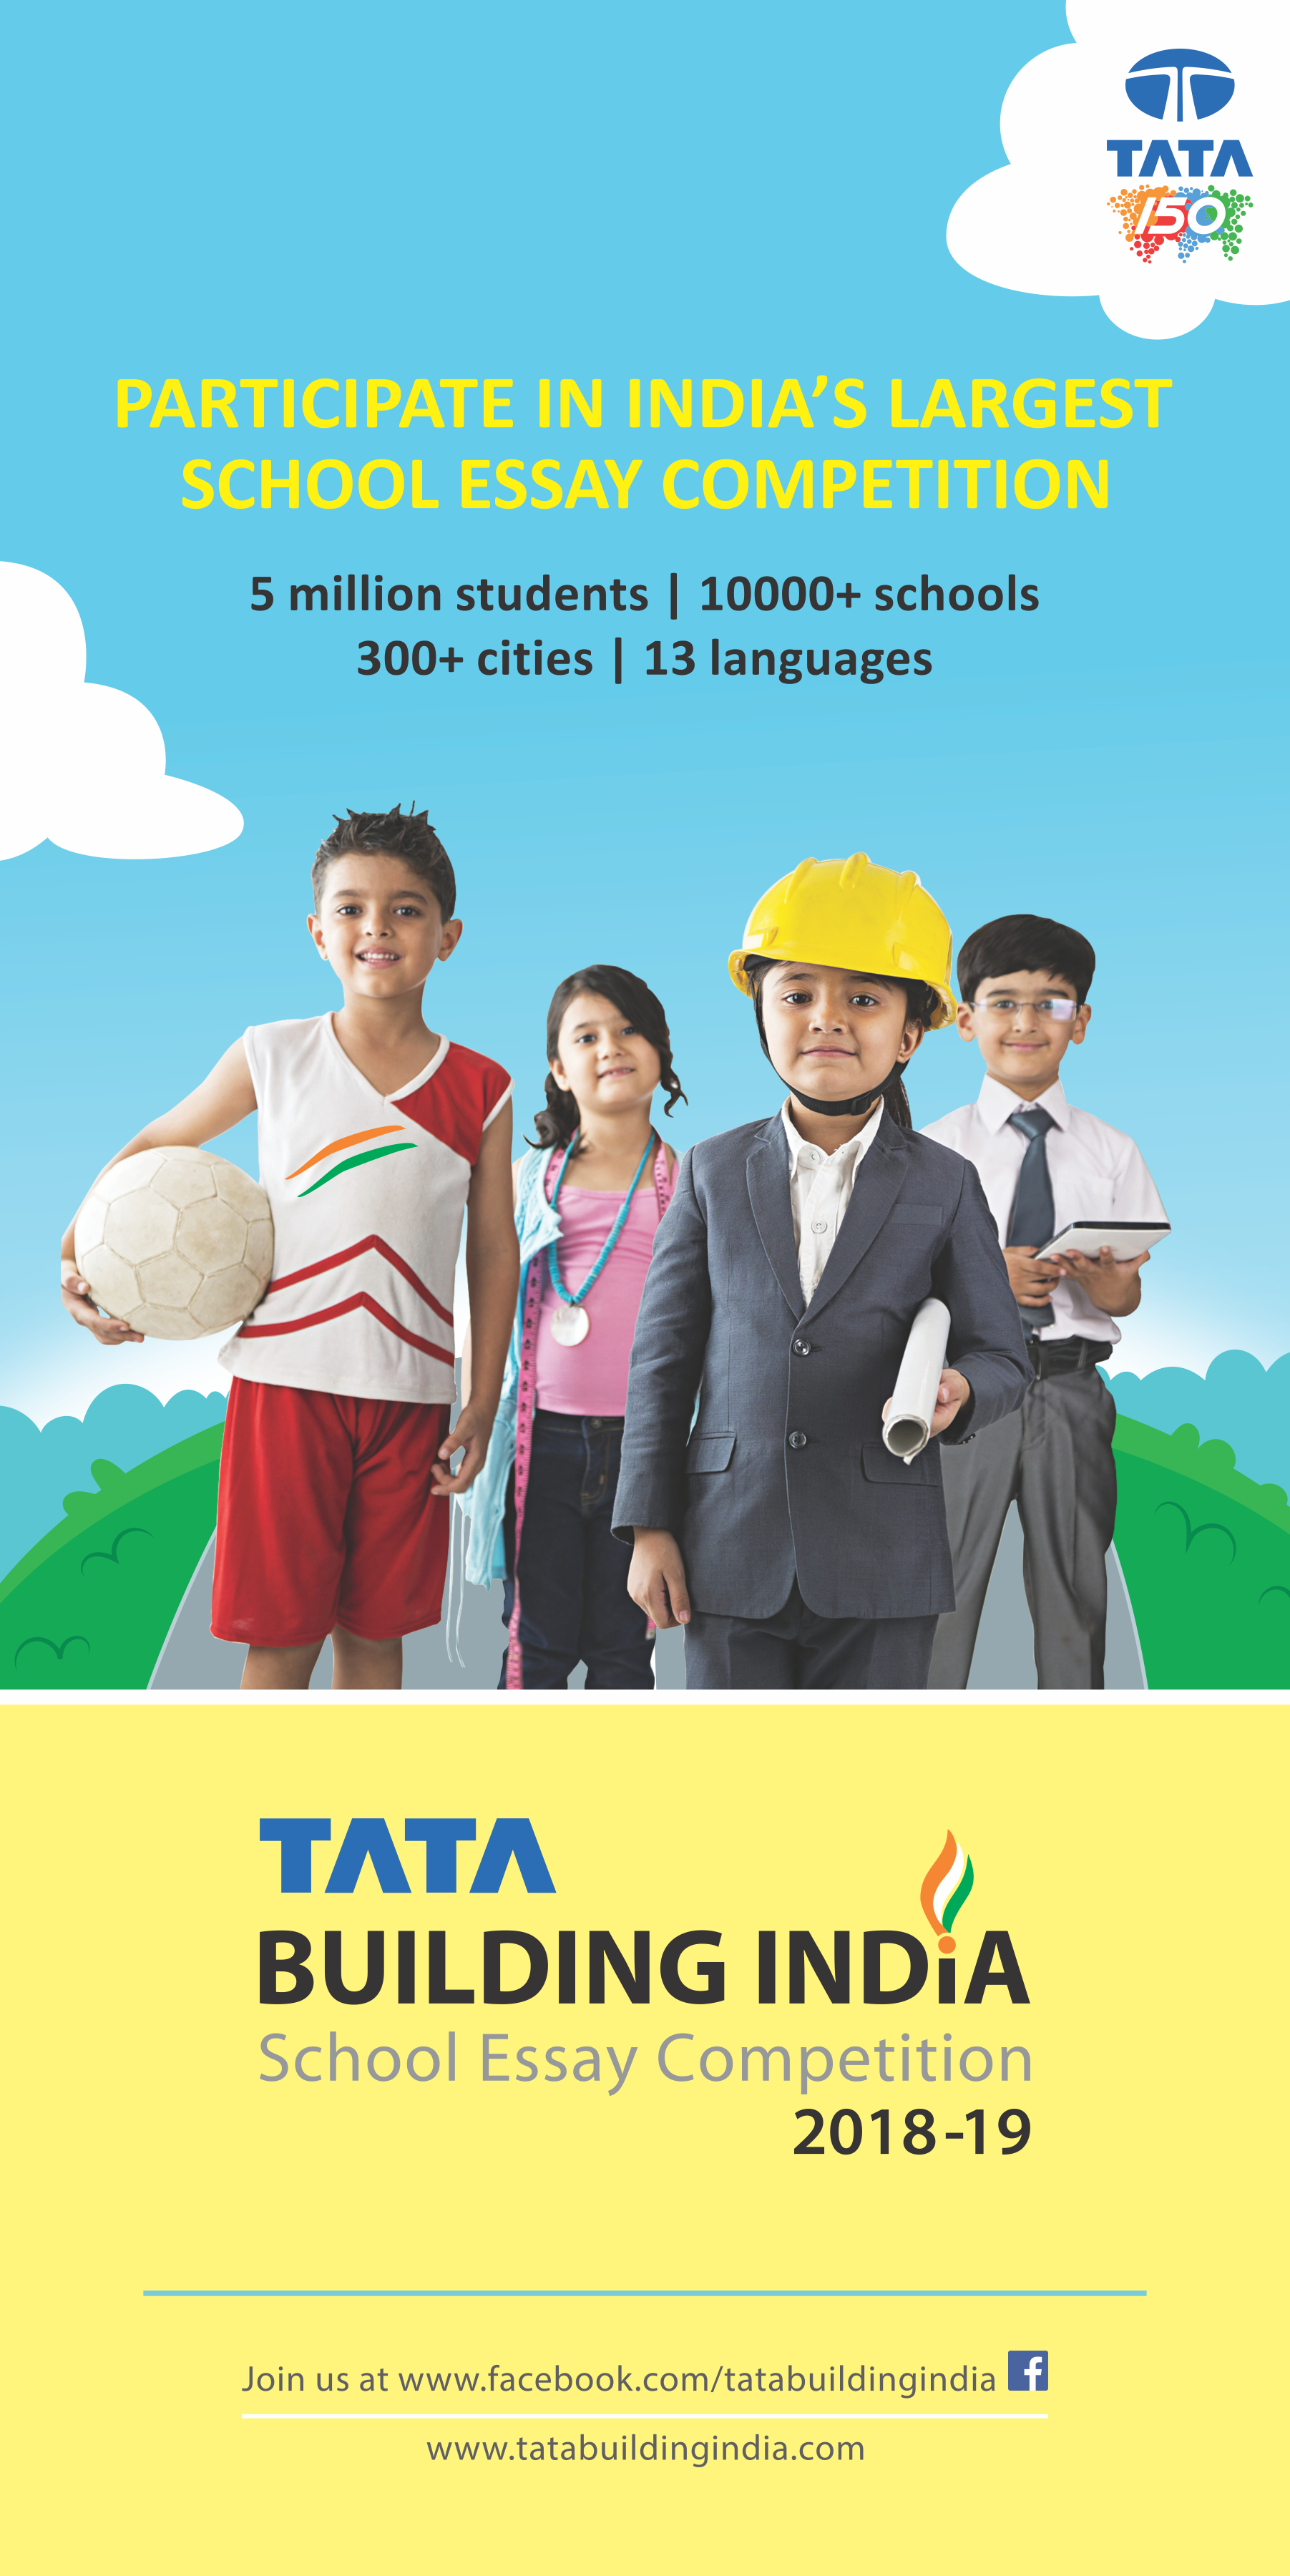 tata building india school essay competition gujarati 2015-16